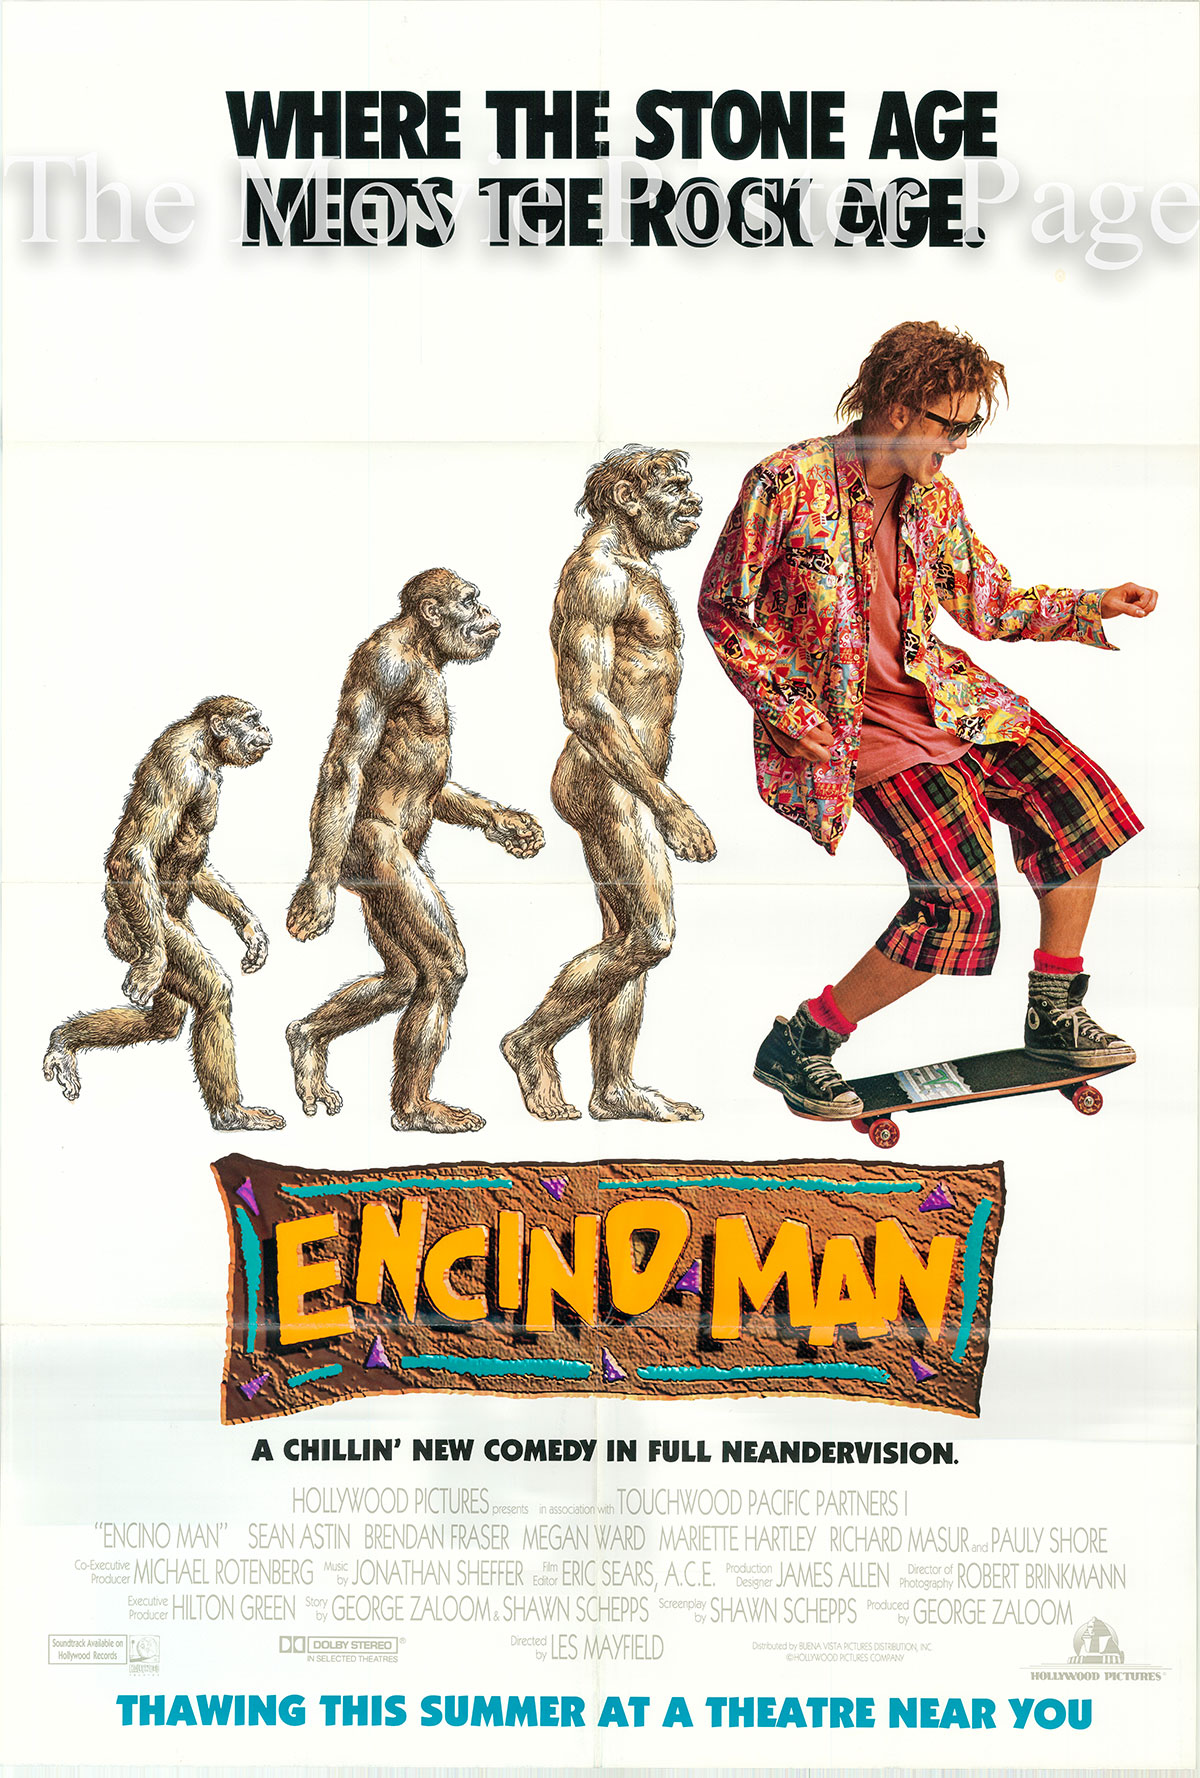 Pictured is a US advance one-sheet poster for the 1992 Les Mayfield film Encino Man starring Brendan Fraser.